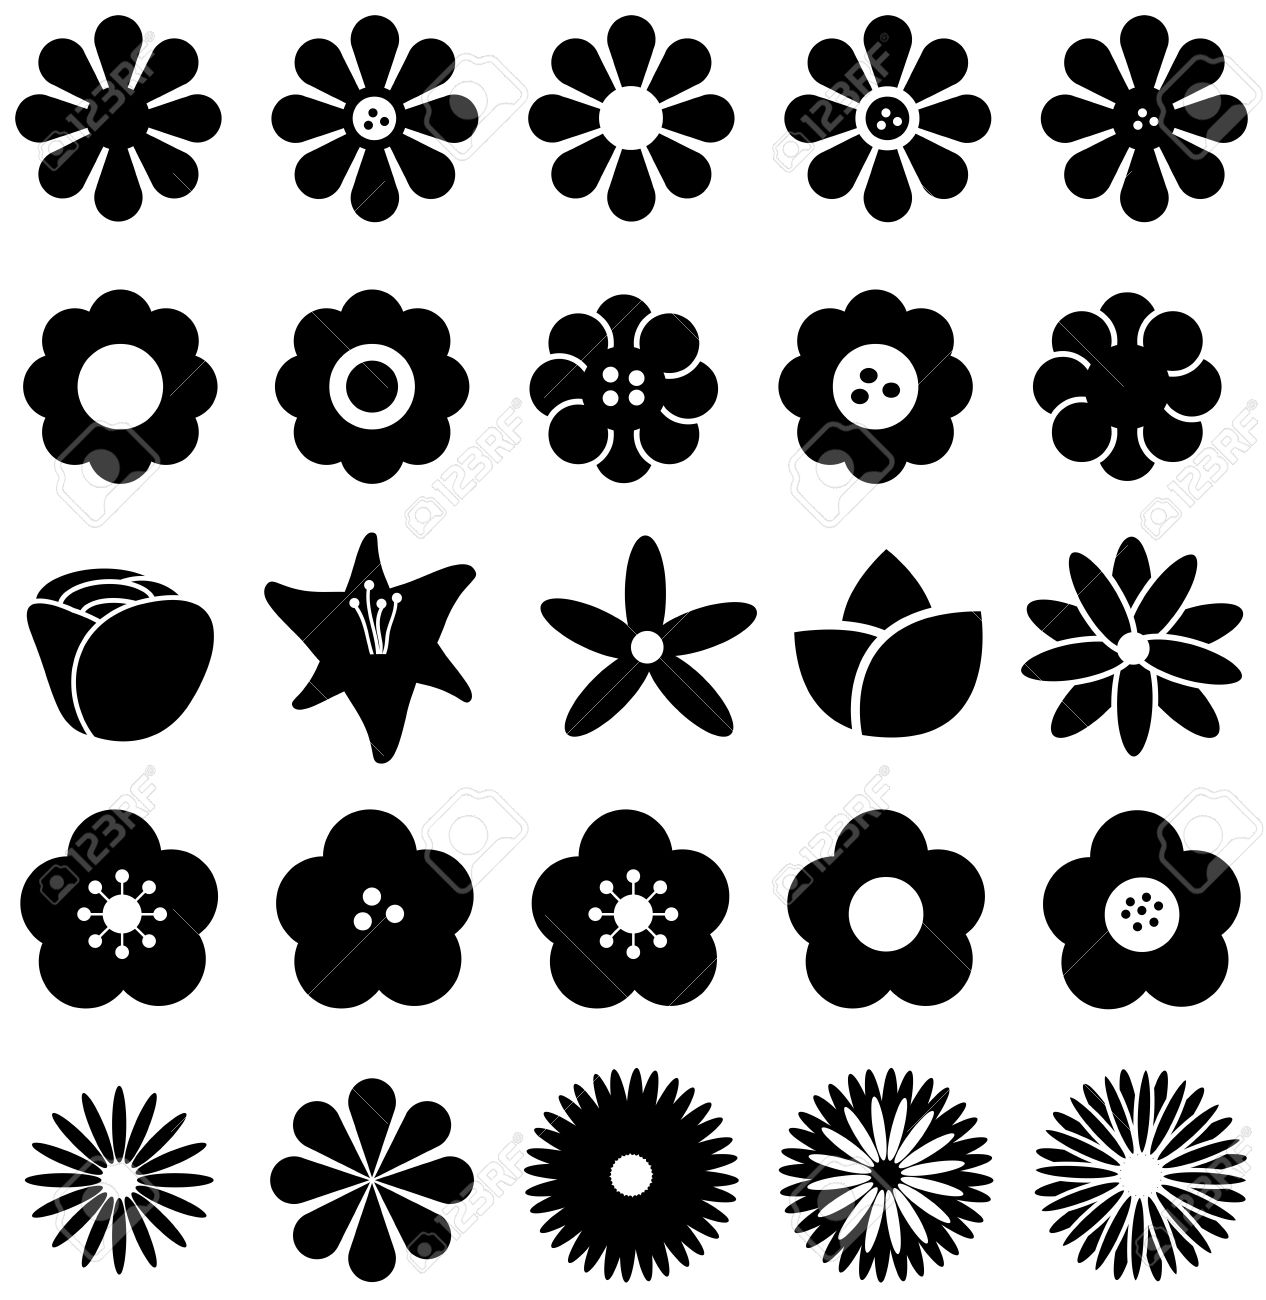 sunflower black and white stock photos u0026 pictures royalty free